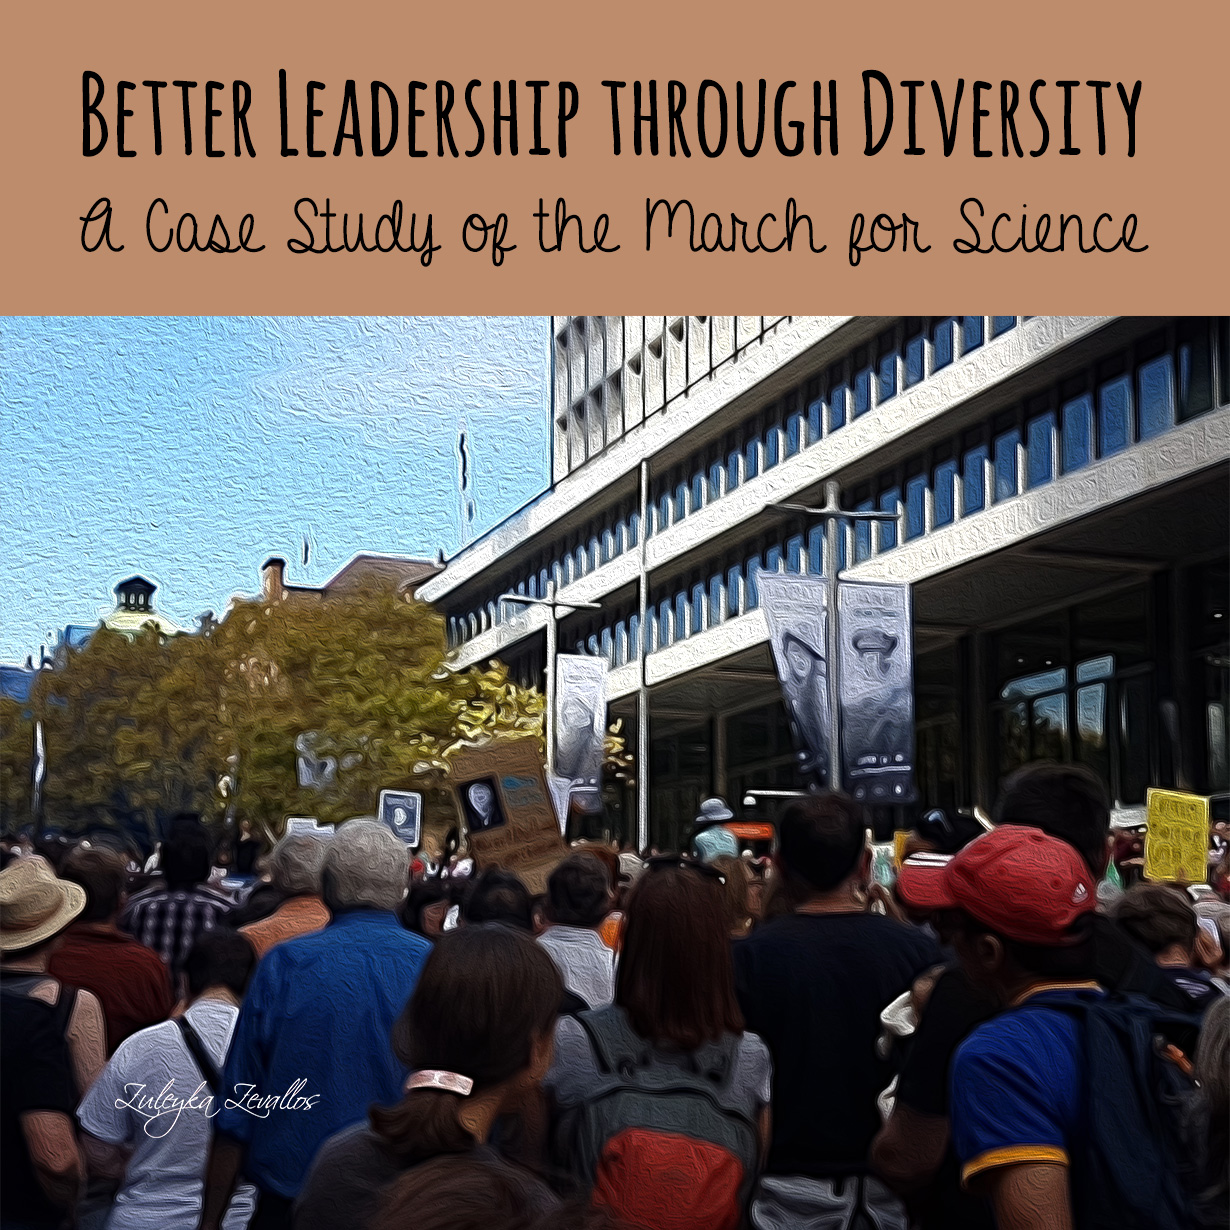 Better Leadership through Diversity: A Case Study of the March for Science